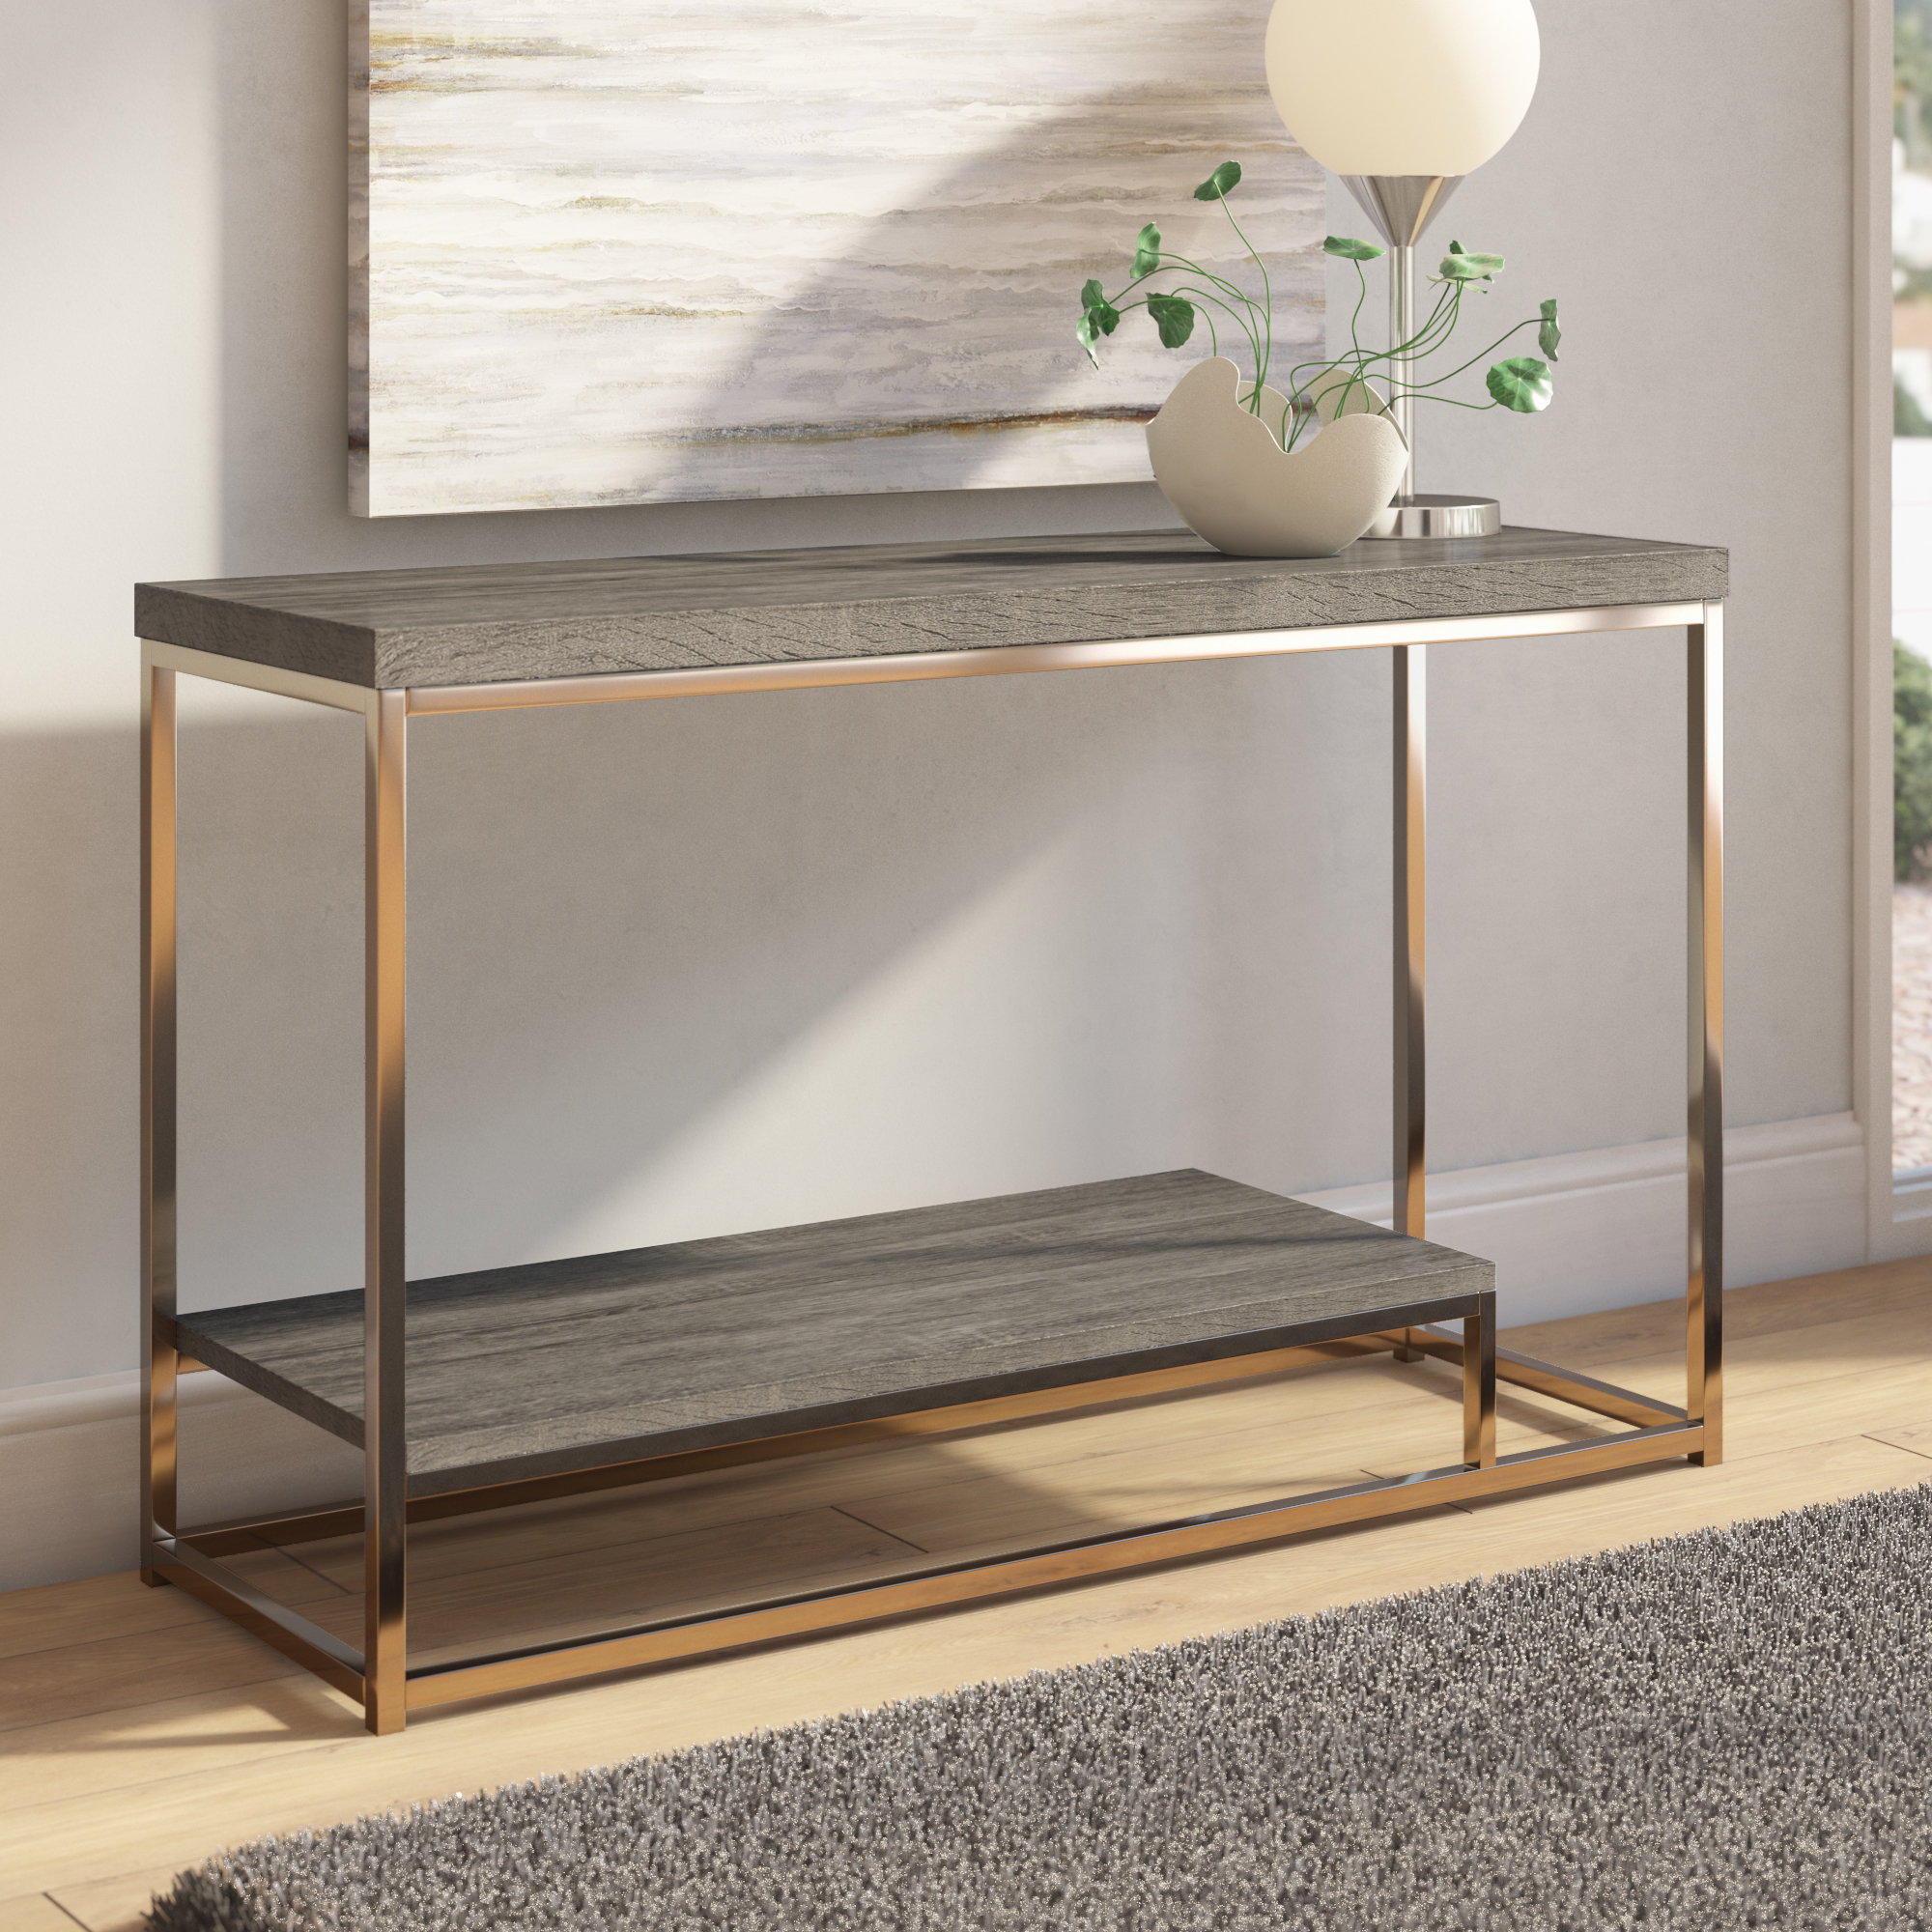 Modern & Contemporary Console Tables You'll Love | Wayfair regarding Natural Wood Mirrored Media Console Tables (Image 19 of 30)